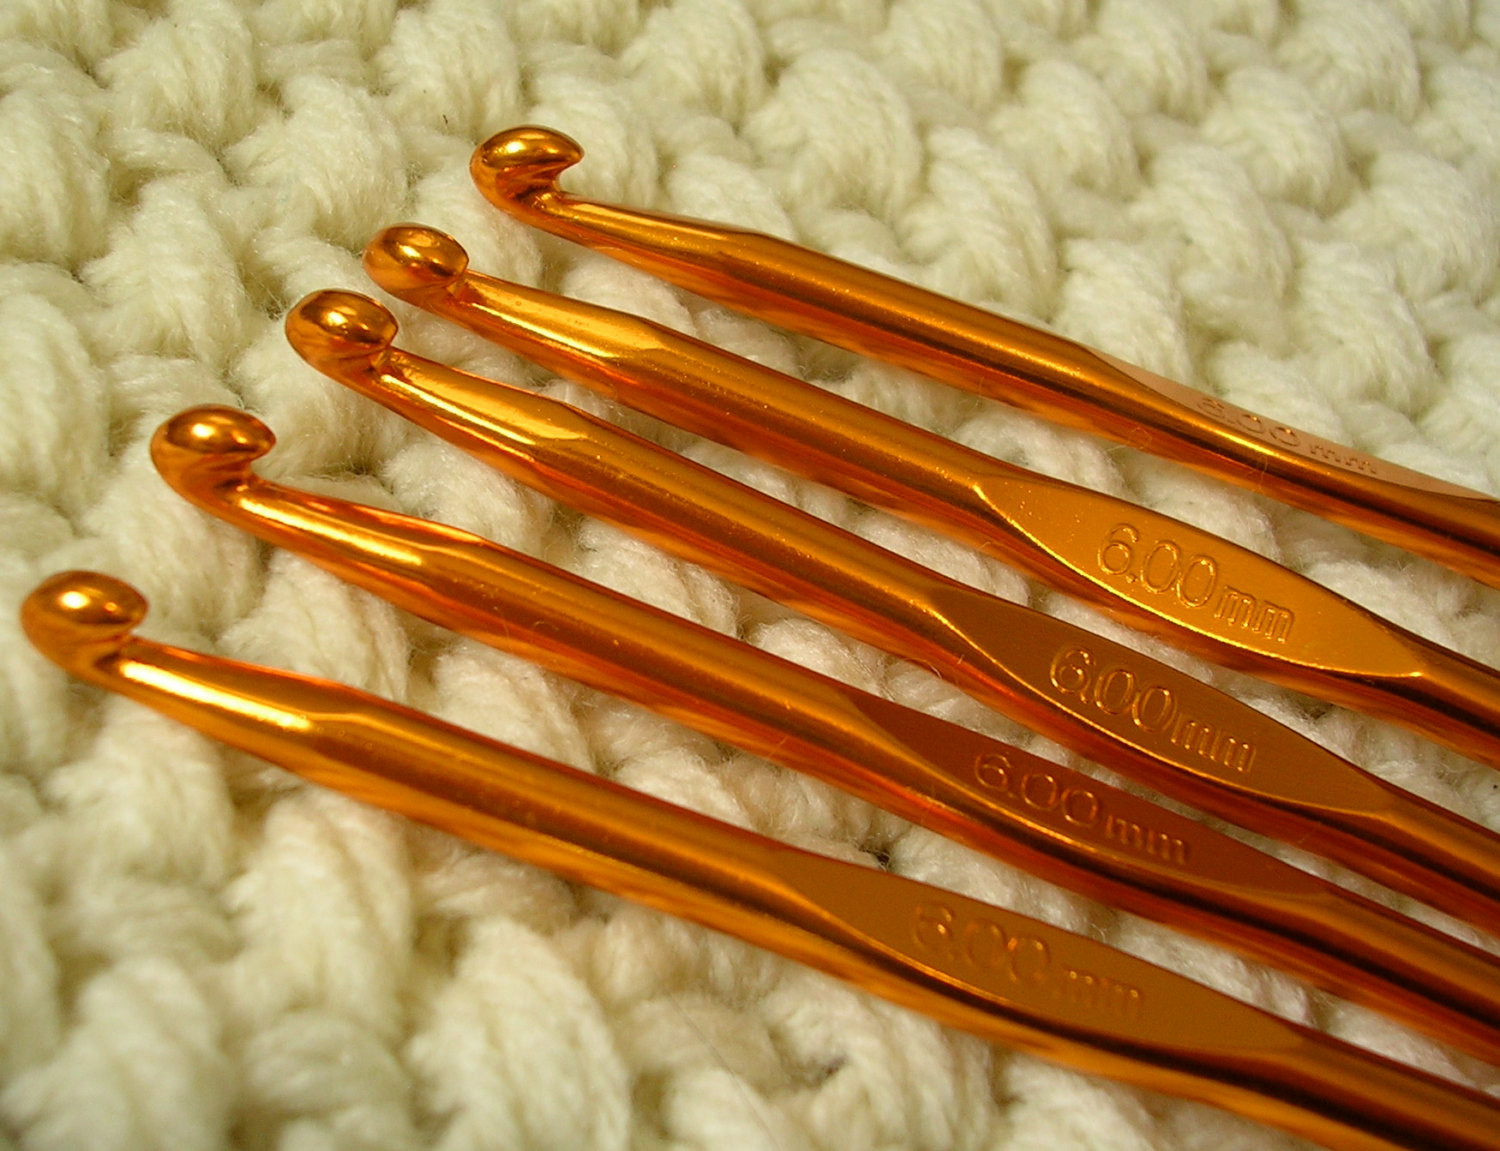 J Crochet Hook Lovely Crochet Hook Aluminum Metal Size 6mm J Crochet tools Of Perfect 47 Pics J Crochet Hook